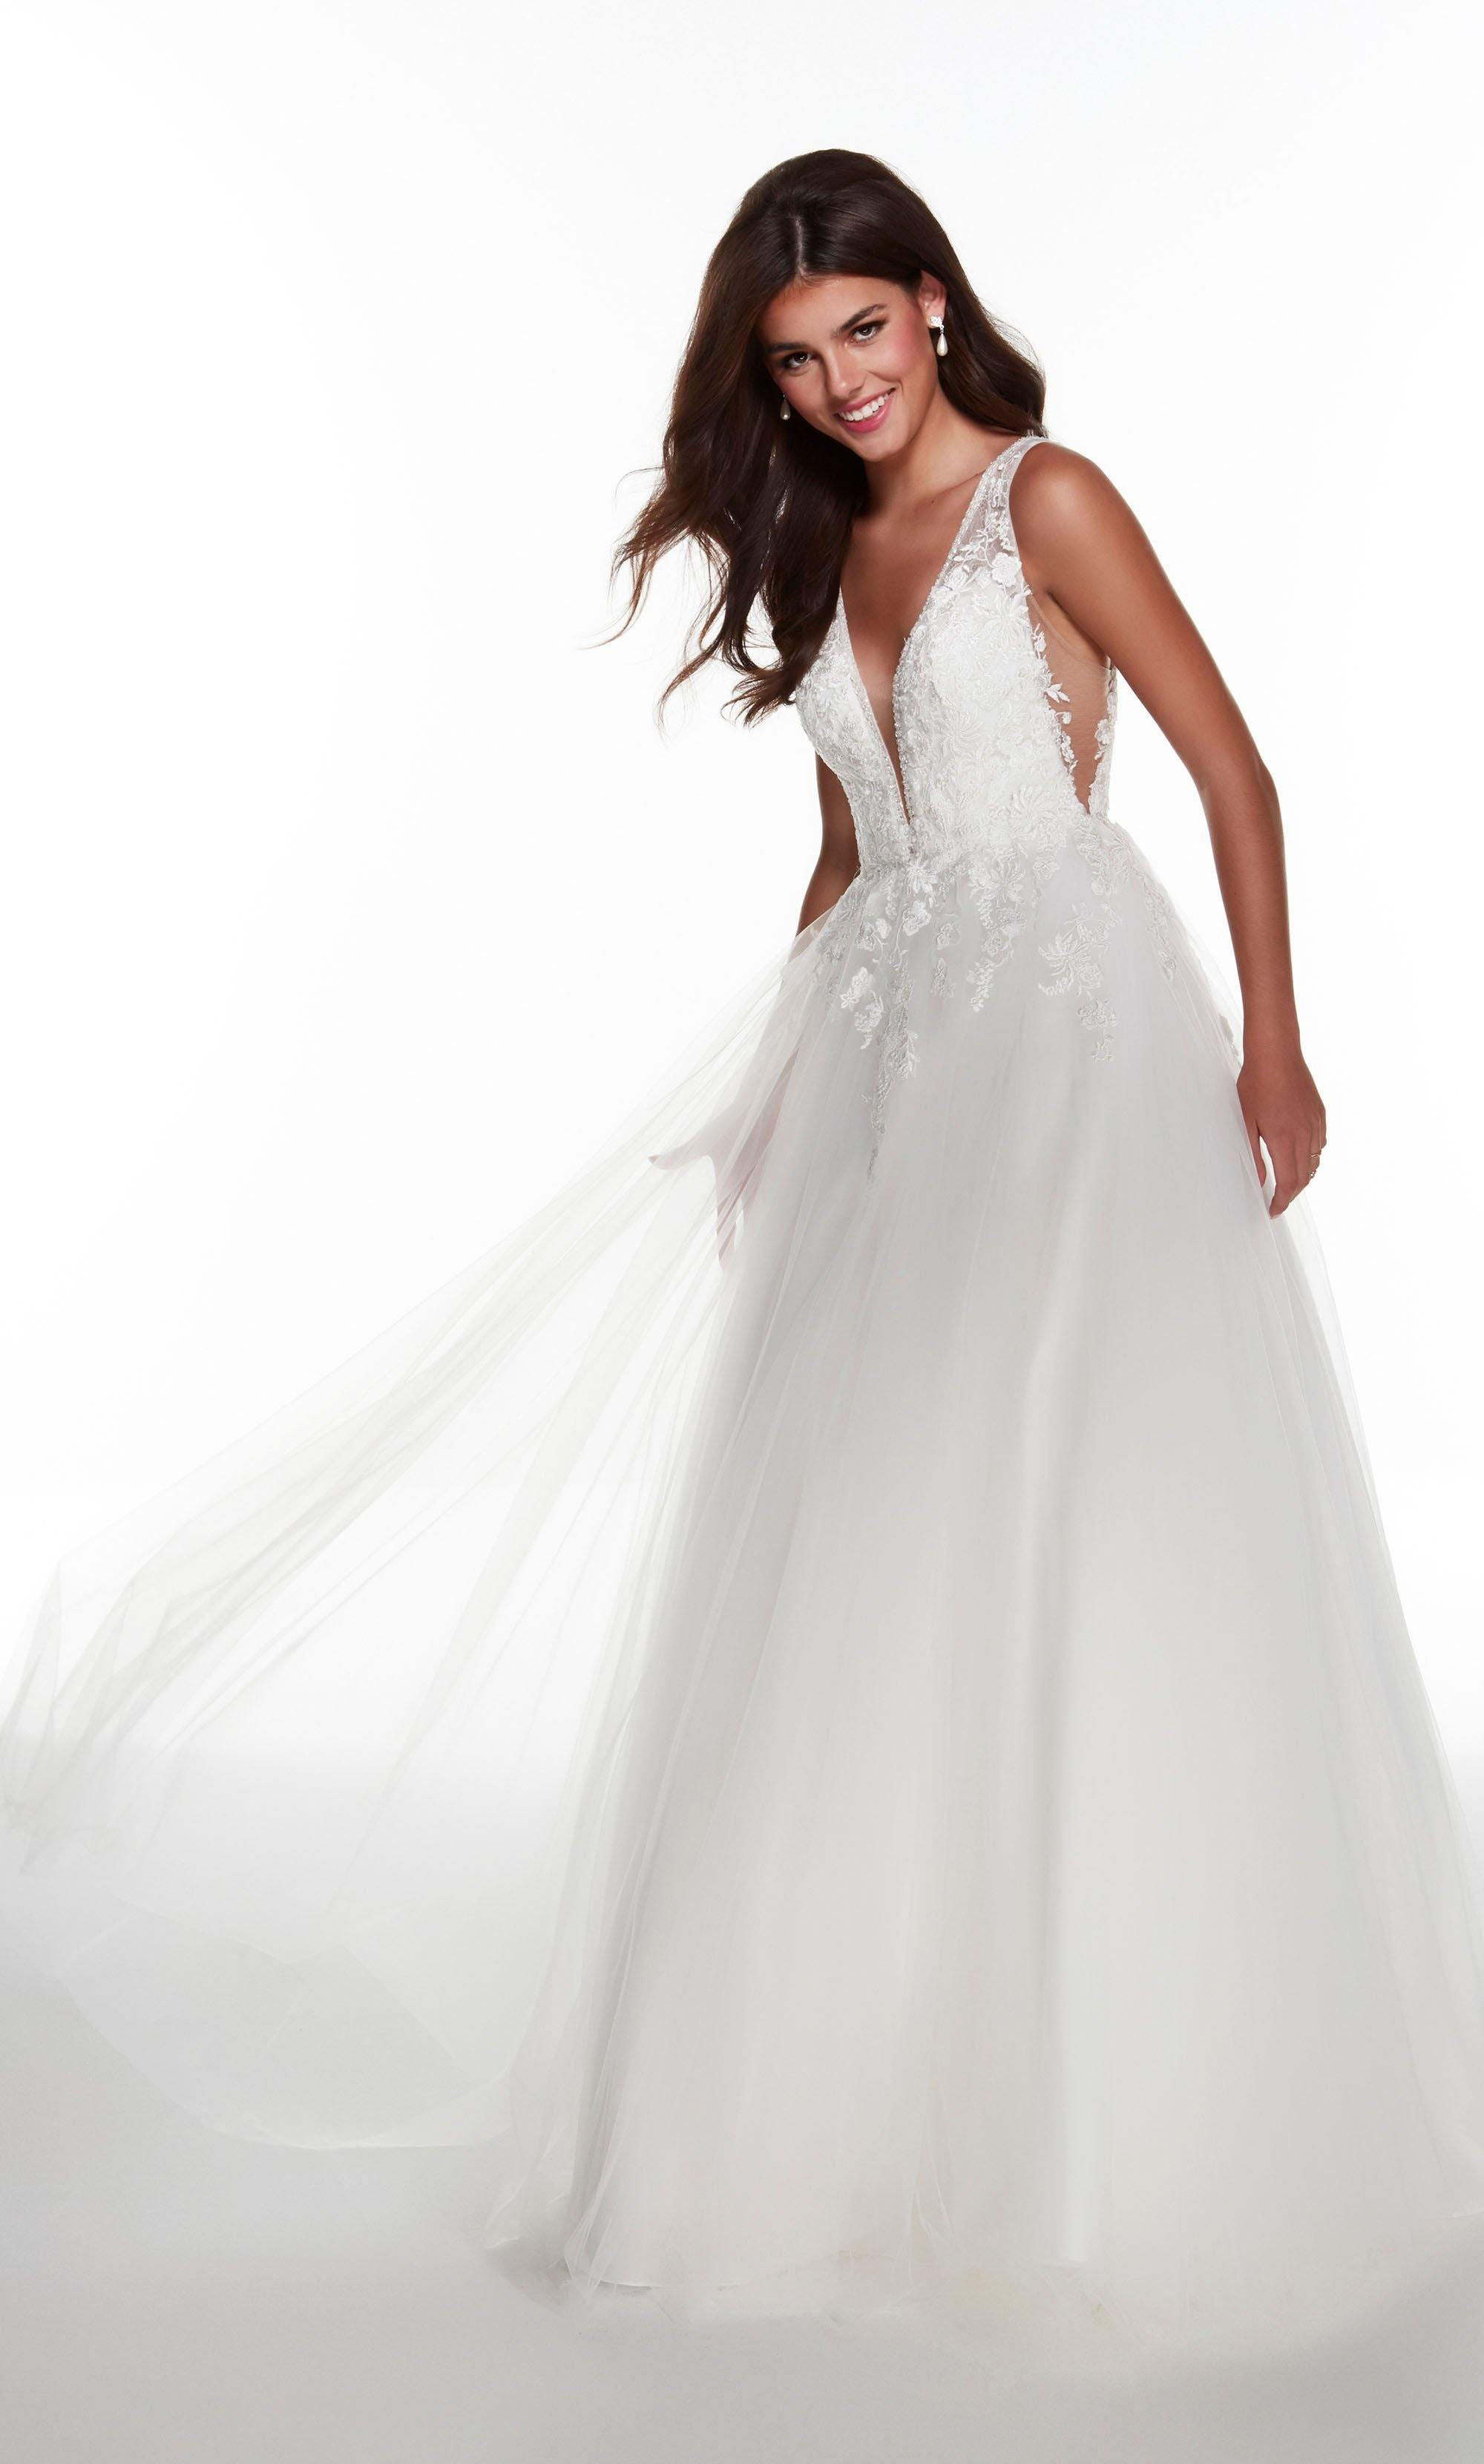 Diamond White Ballgown with a plunging neckline and floral embroidered bodice